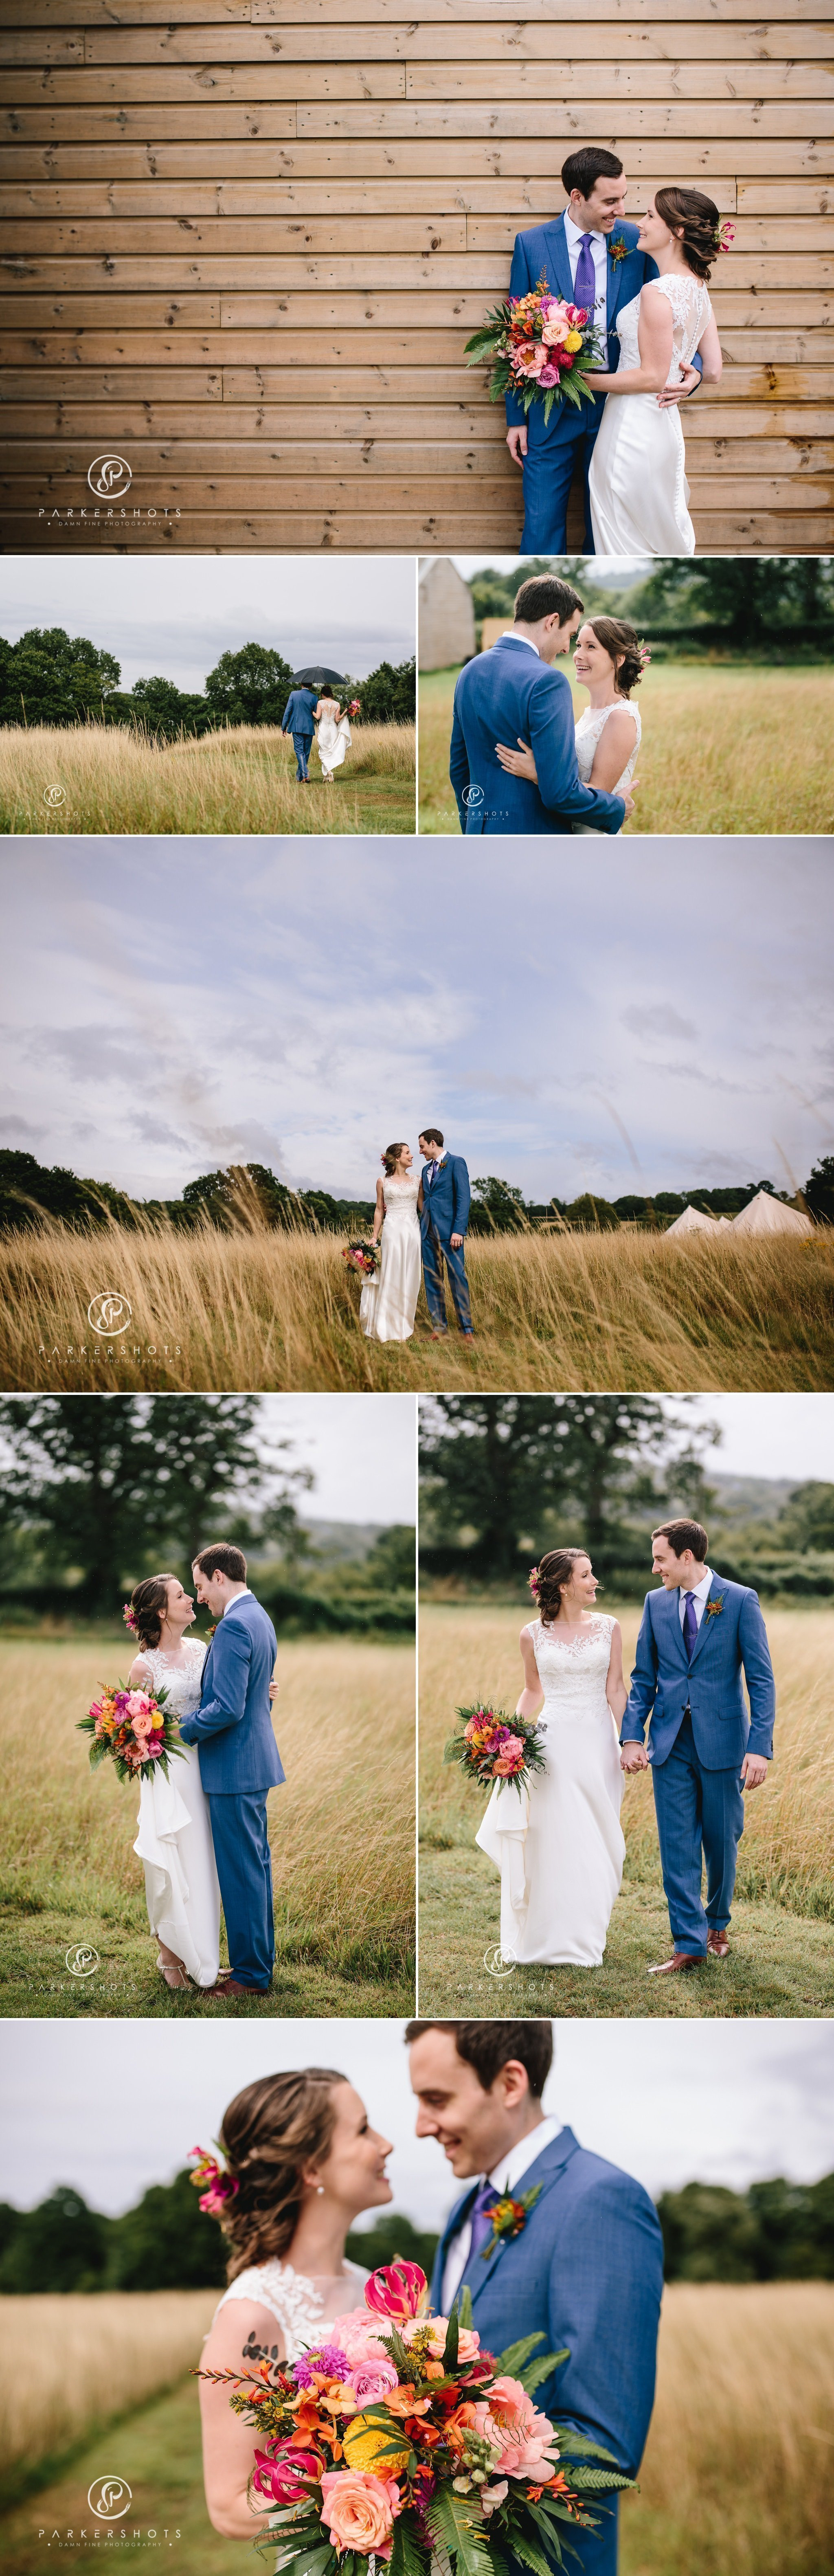 Alternative wedding photography at Chafford Park